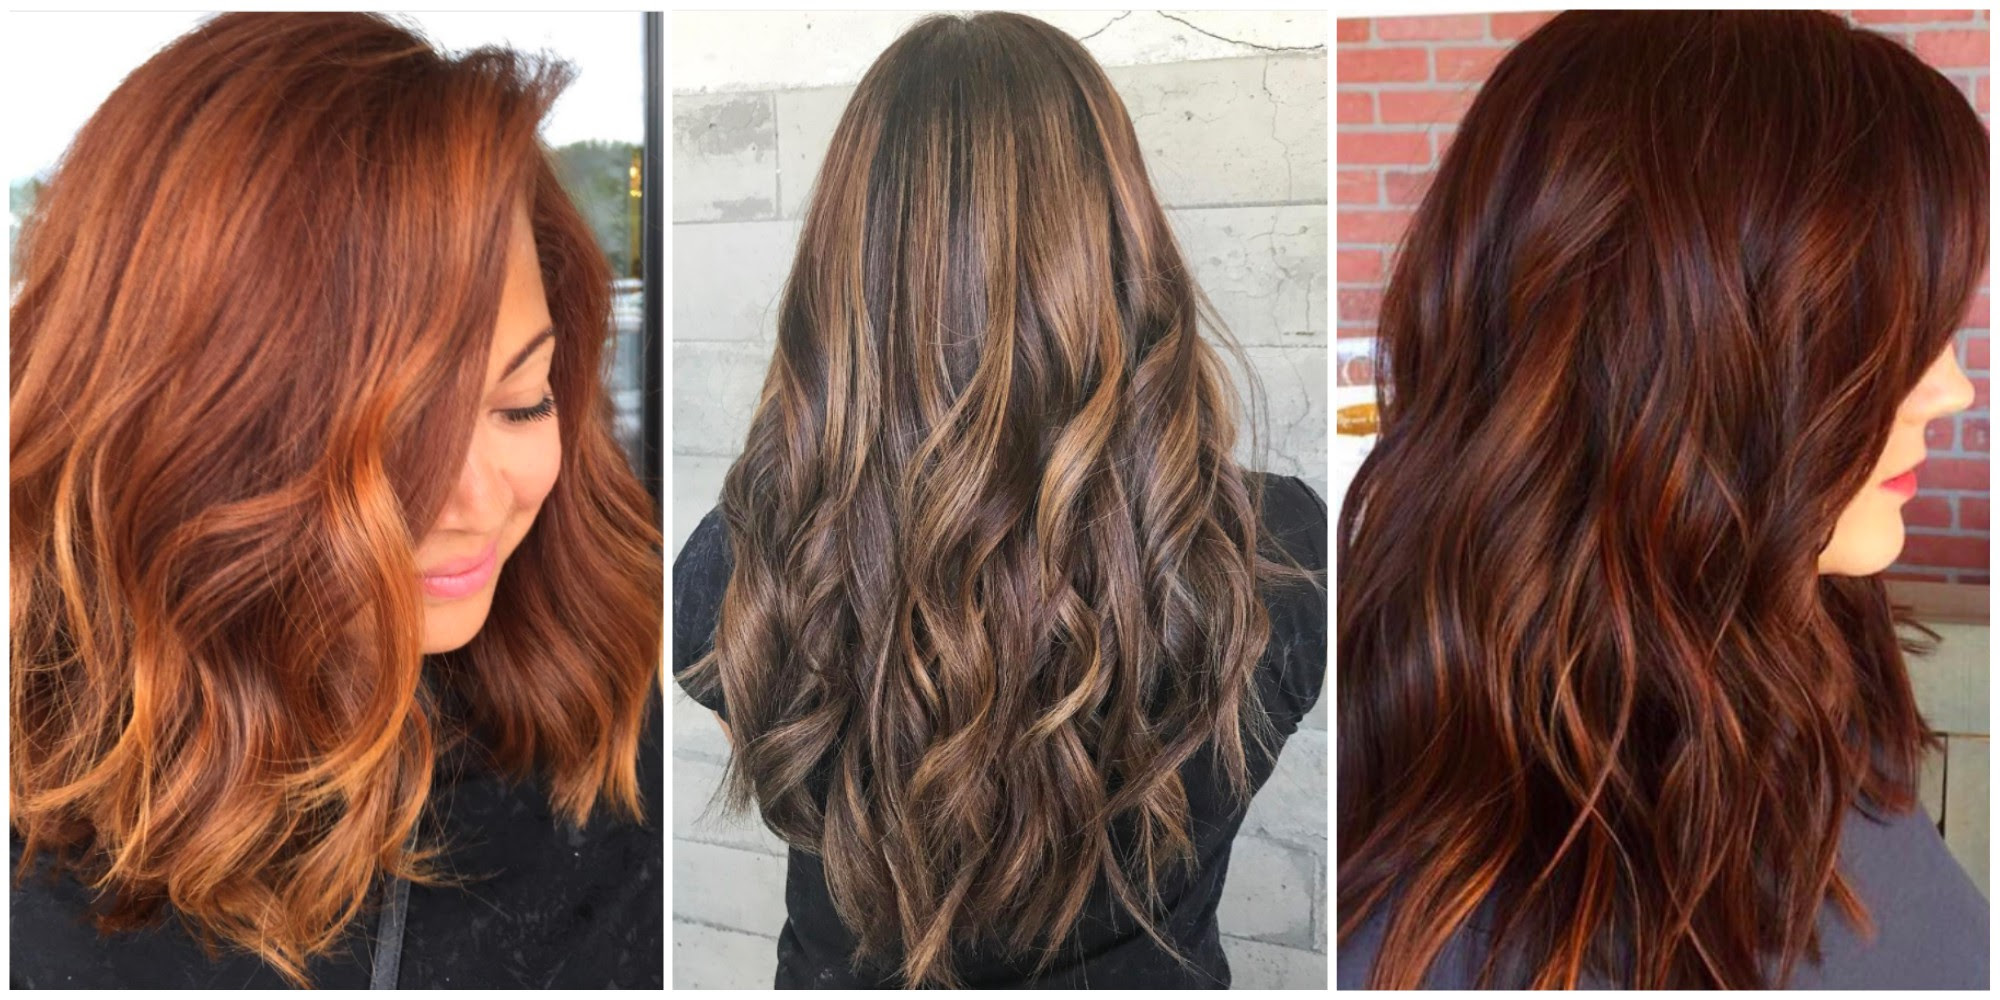 10 Hair Colors Inspired by Fall - Fall Hair Colors 2017